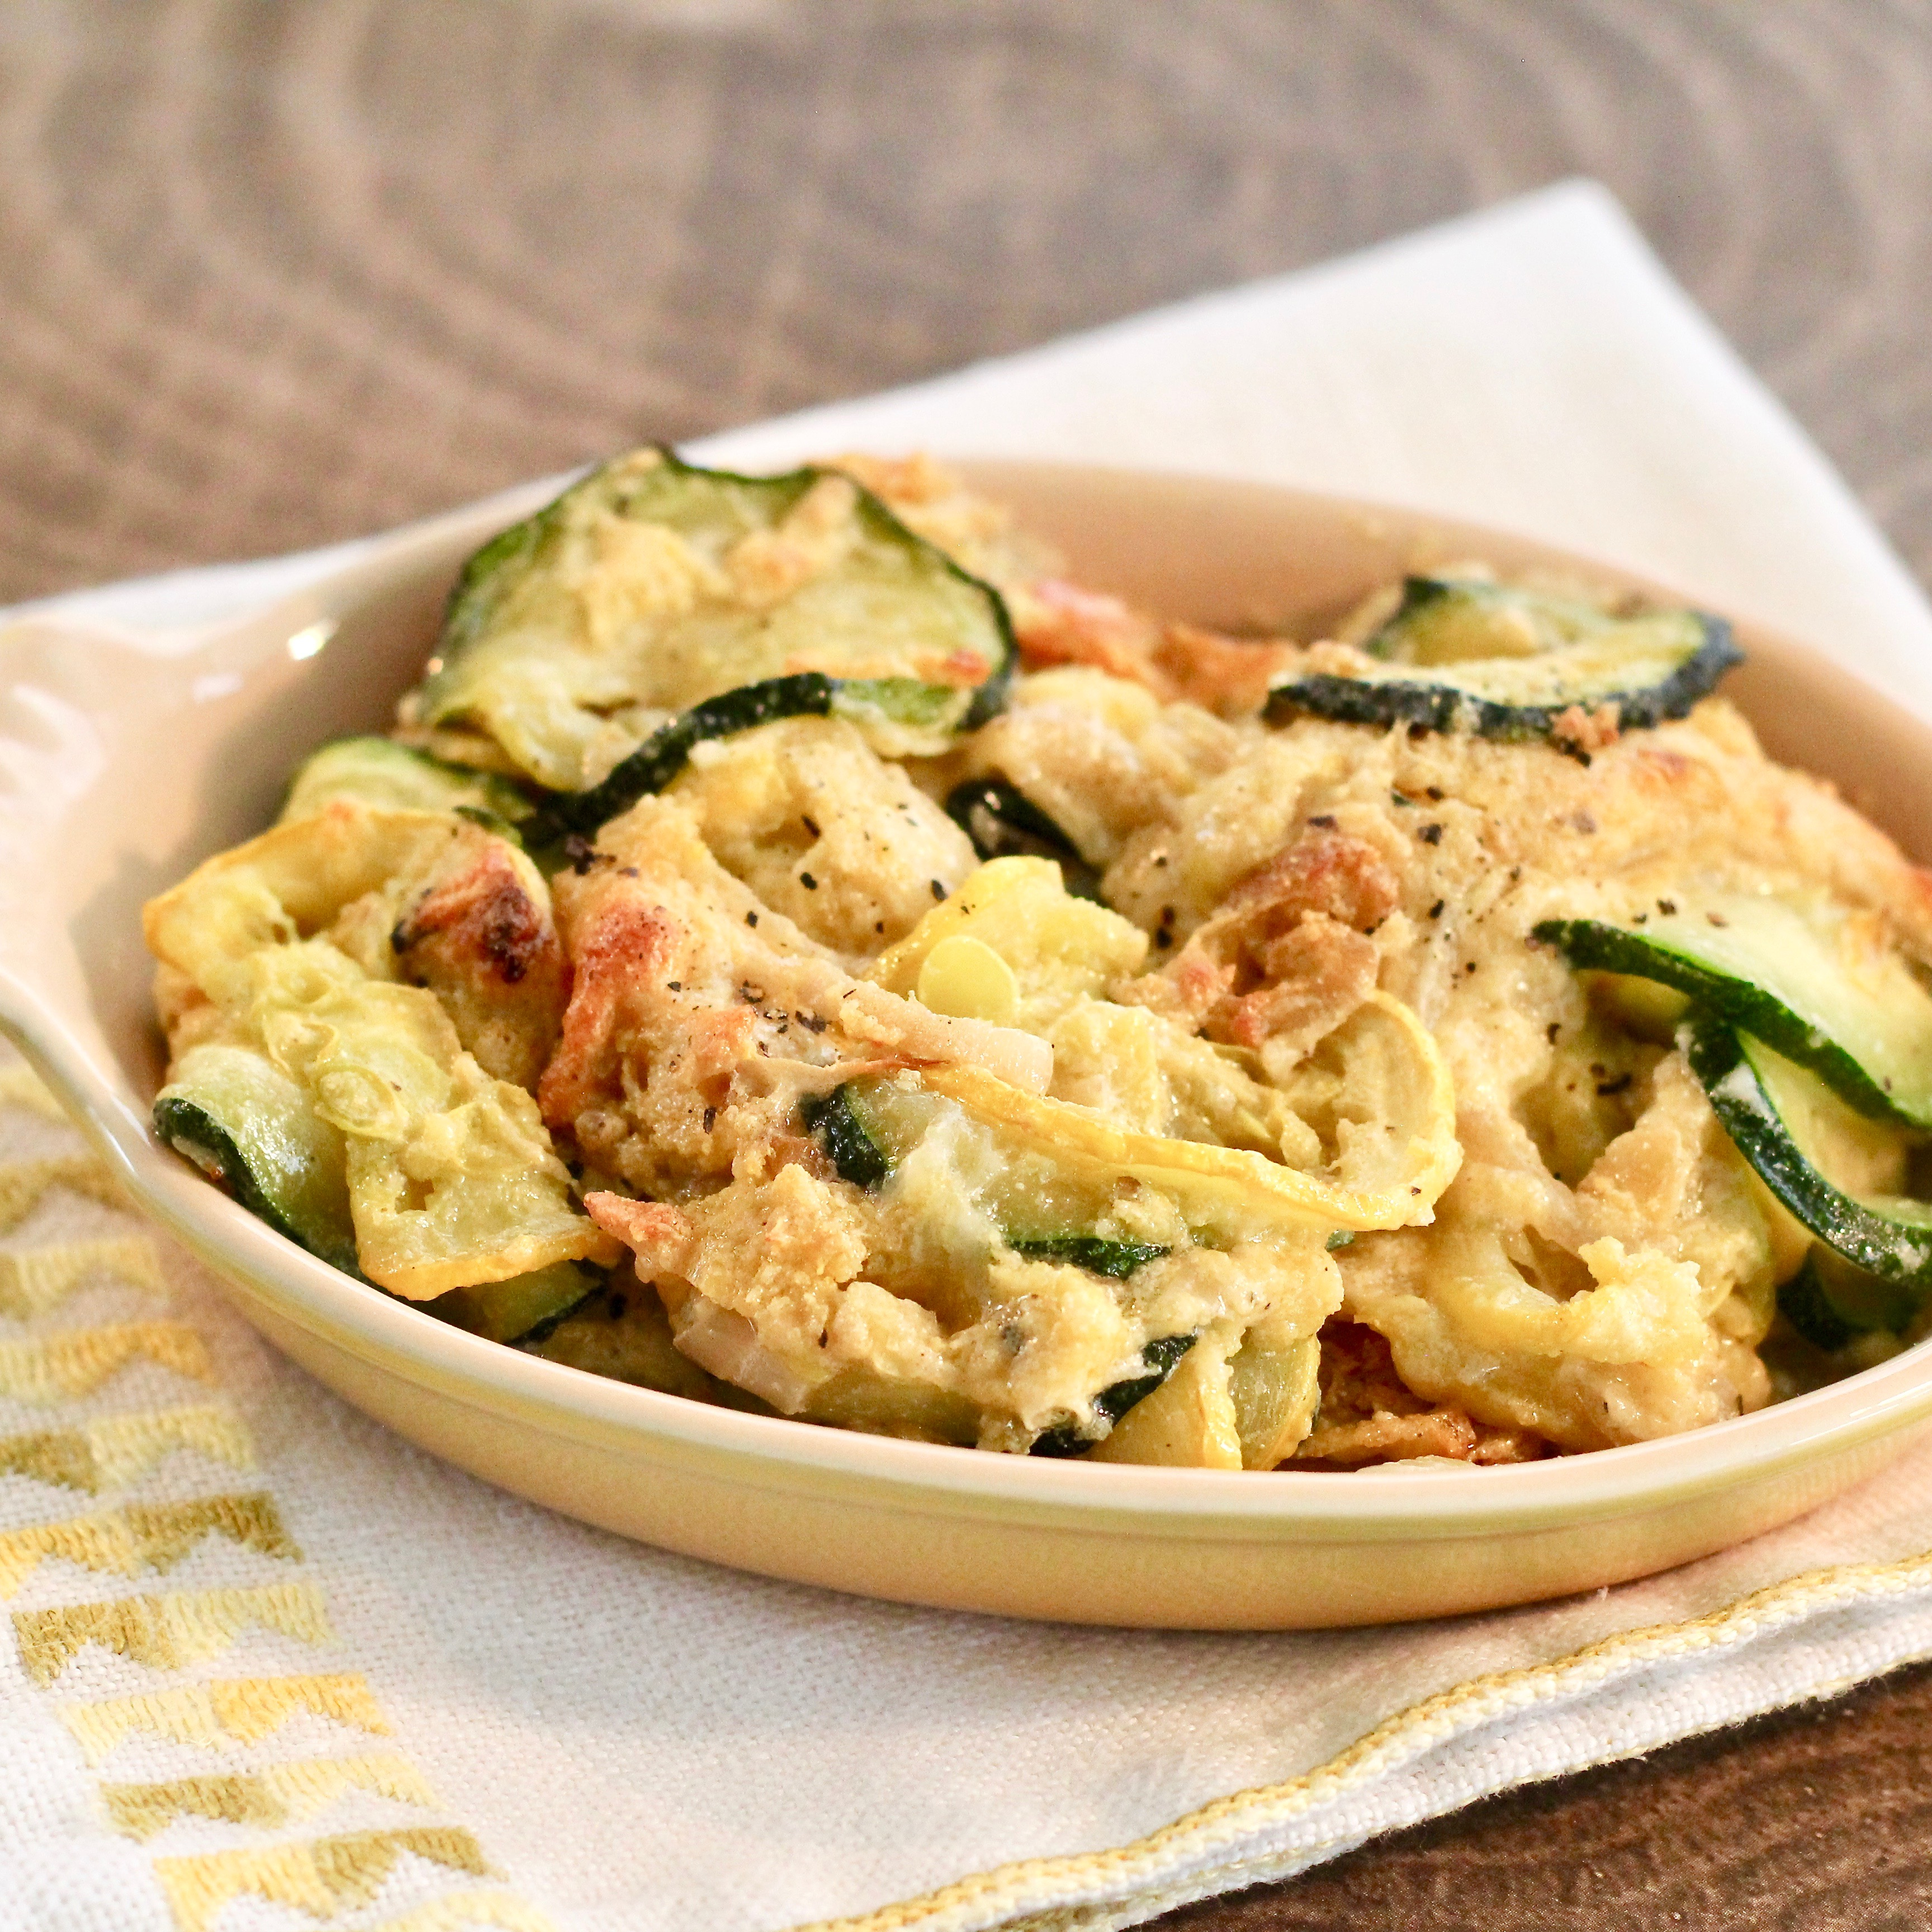 Buttery cracker crumbs and Mexican cheese blend make the irresistible topping for this gratin. If you prefer the zucchini more al dente, reviewer daphneryan suggests cutting down on the saute time before the zucchini goes into the baking pan.